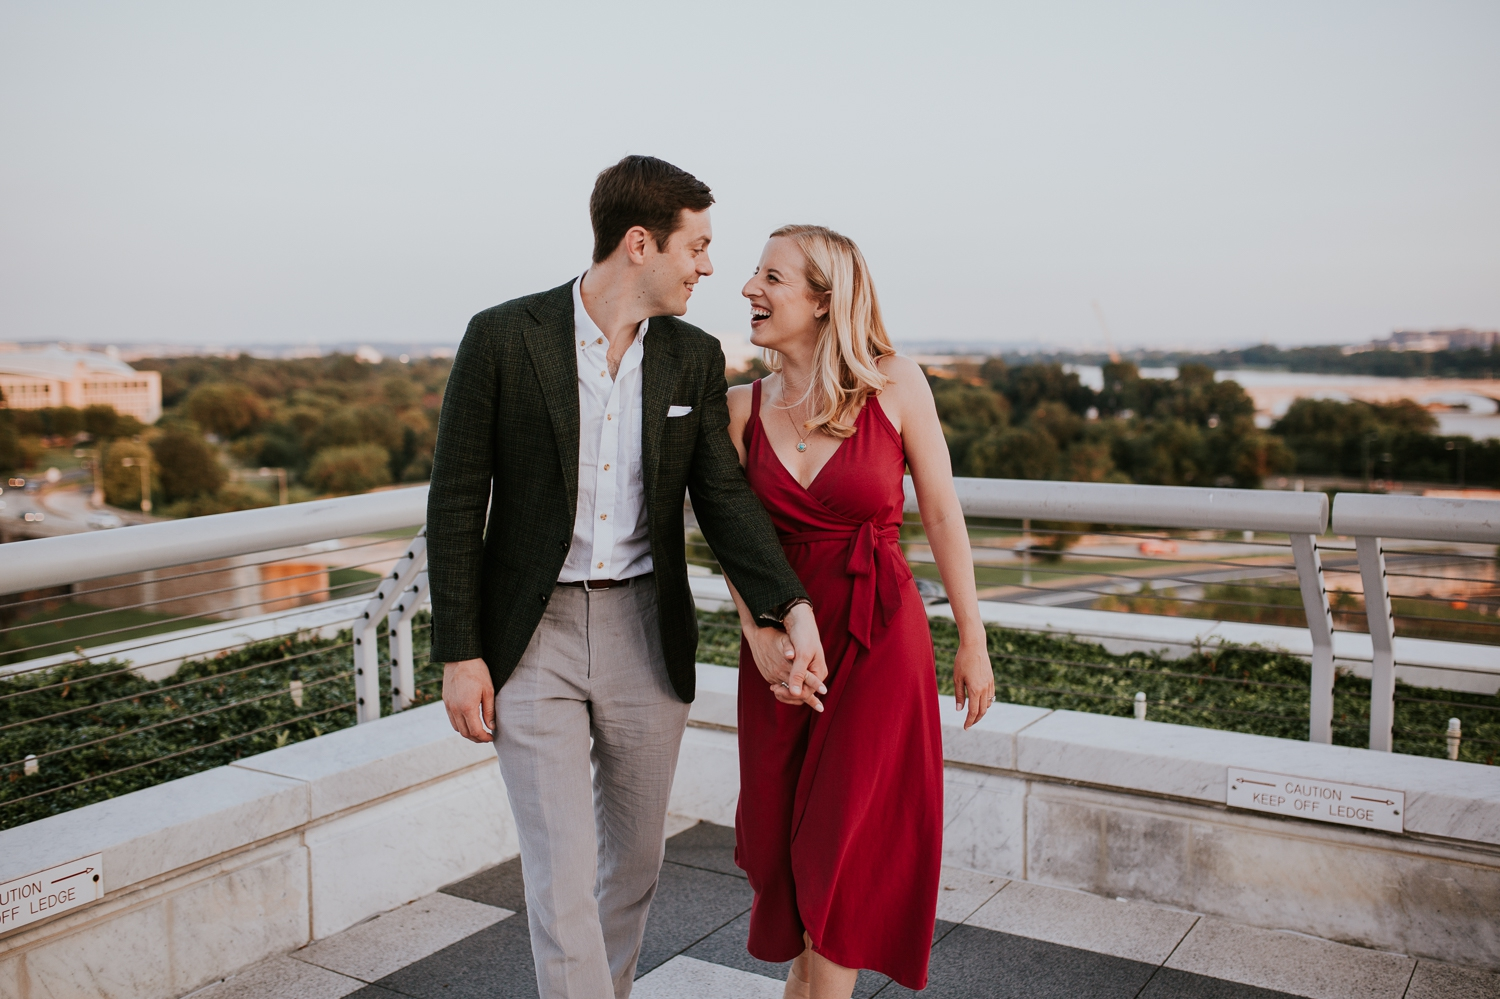 washington-dc-kennedy-center-rooftop-sunset-engagement-photography 13.jpg